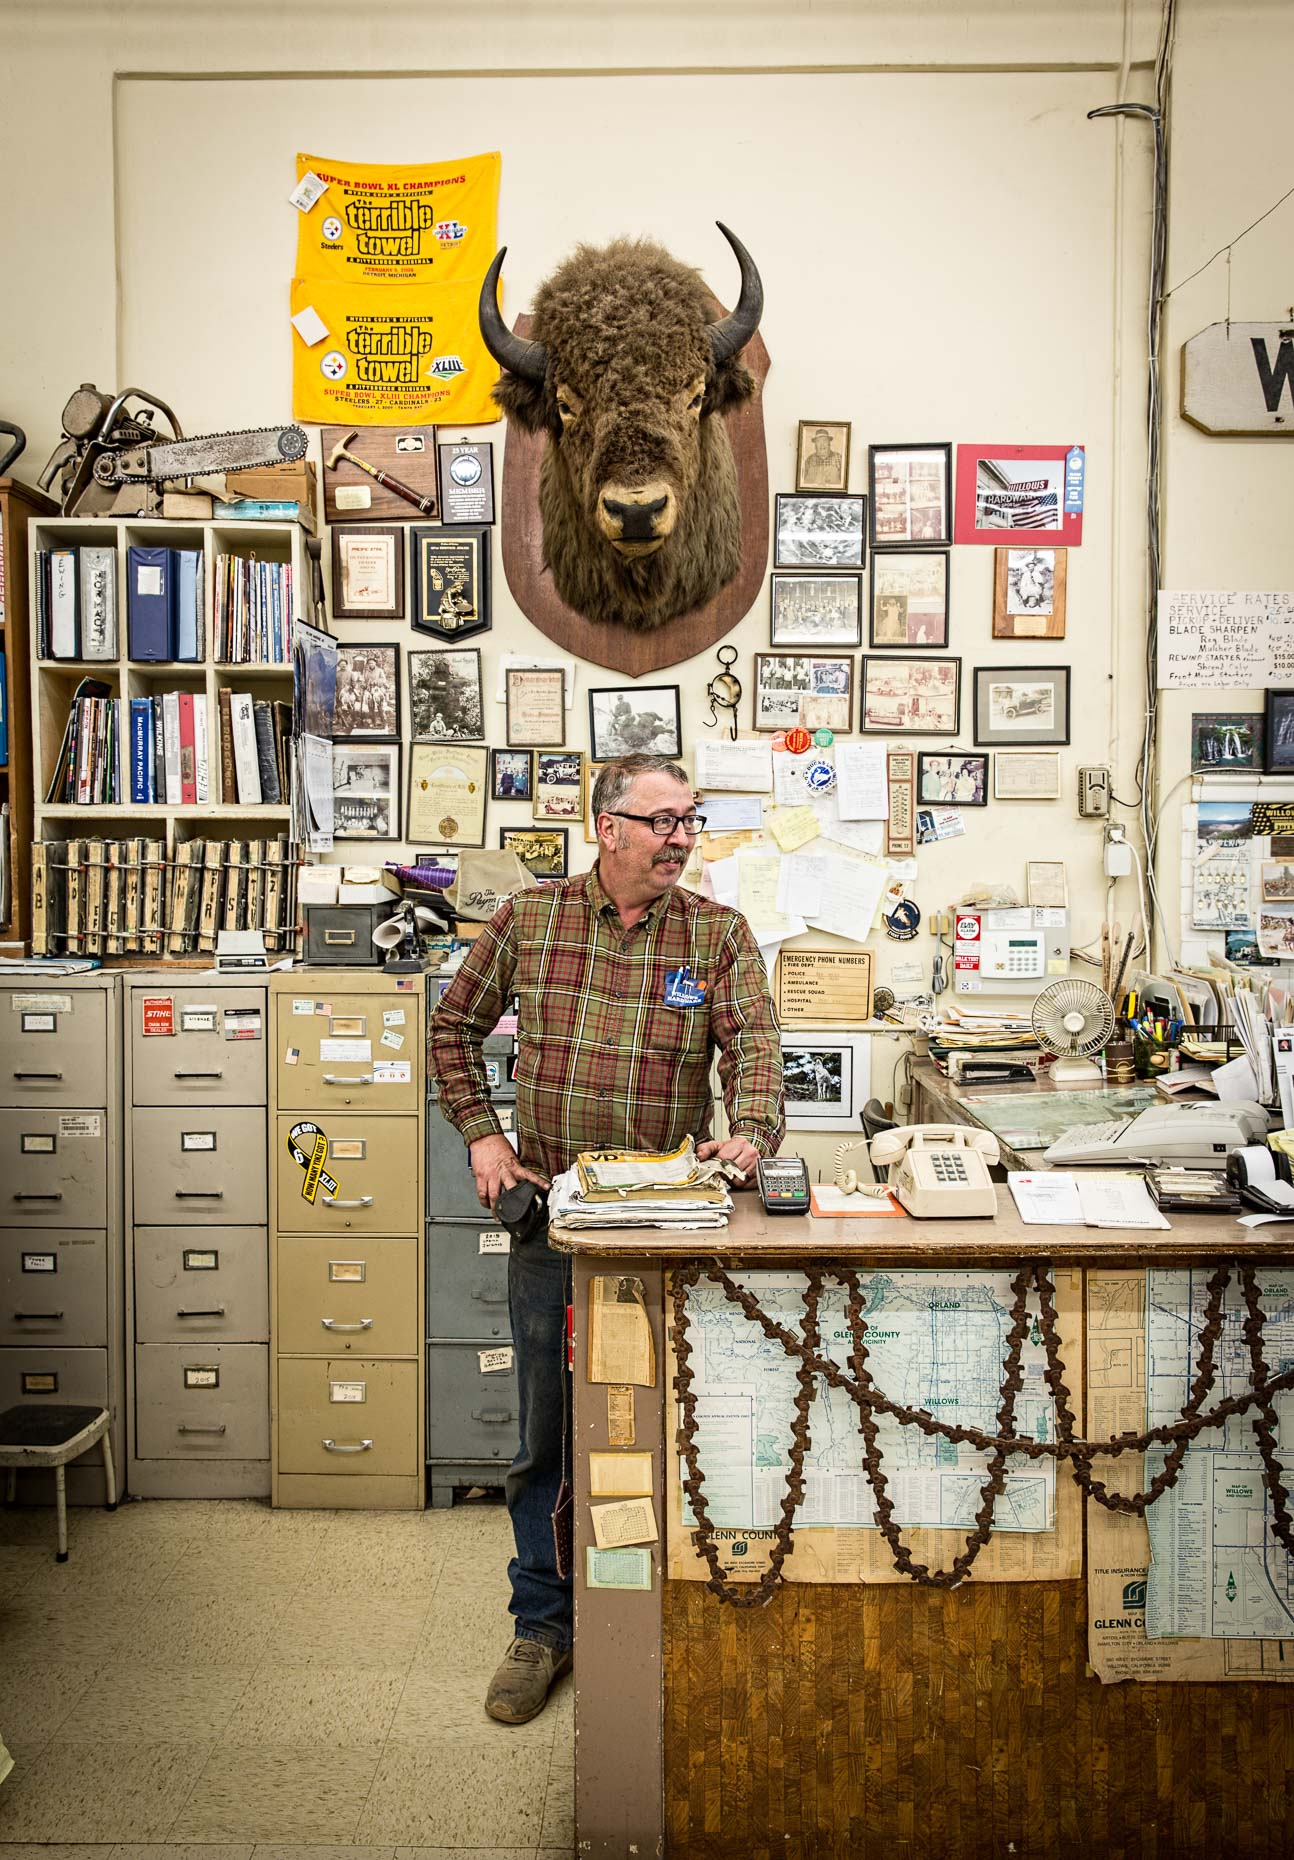 Portrait of man in cluttered hardware store under stuffed buffalo bison head on wall. Willows, California by David Zaitz